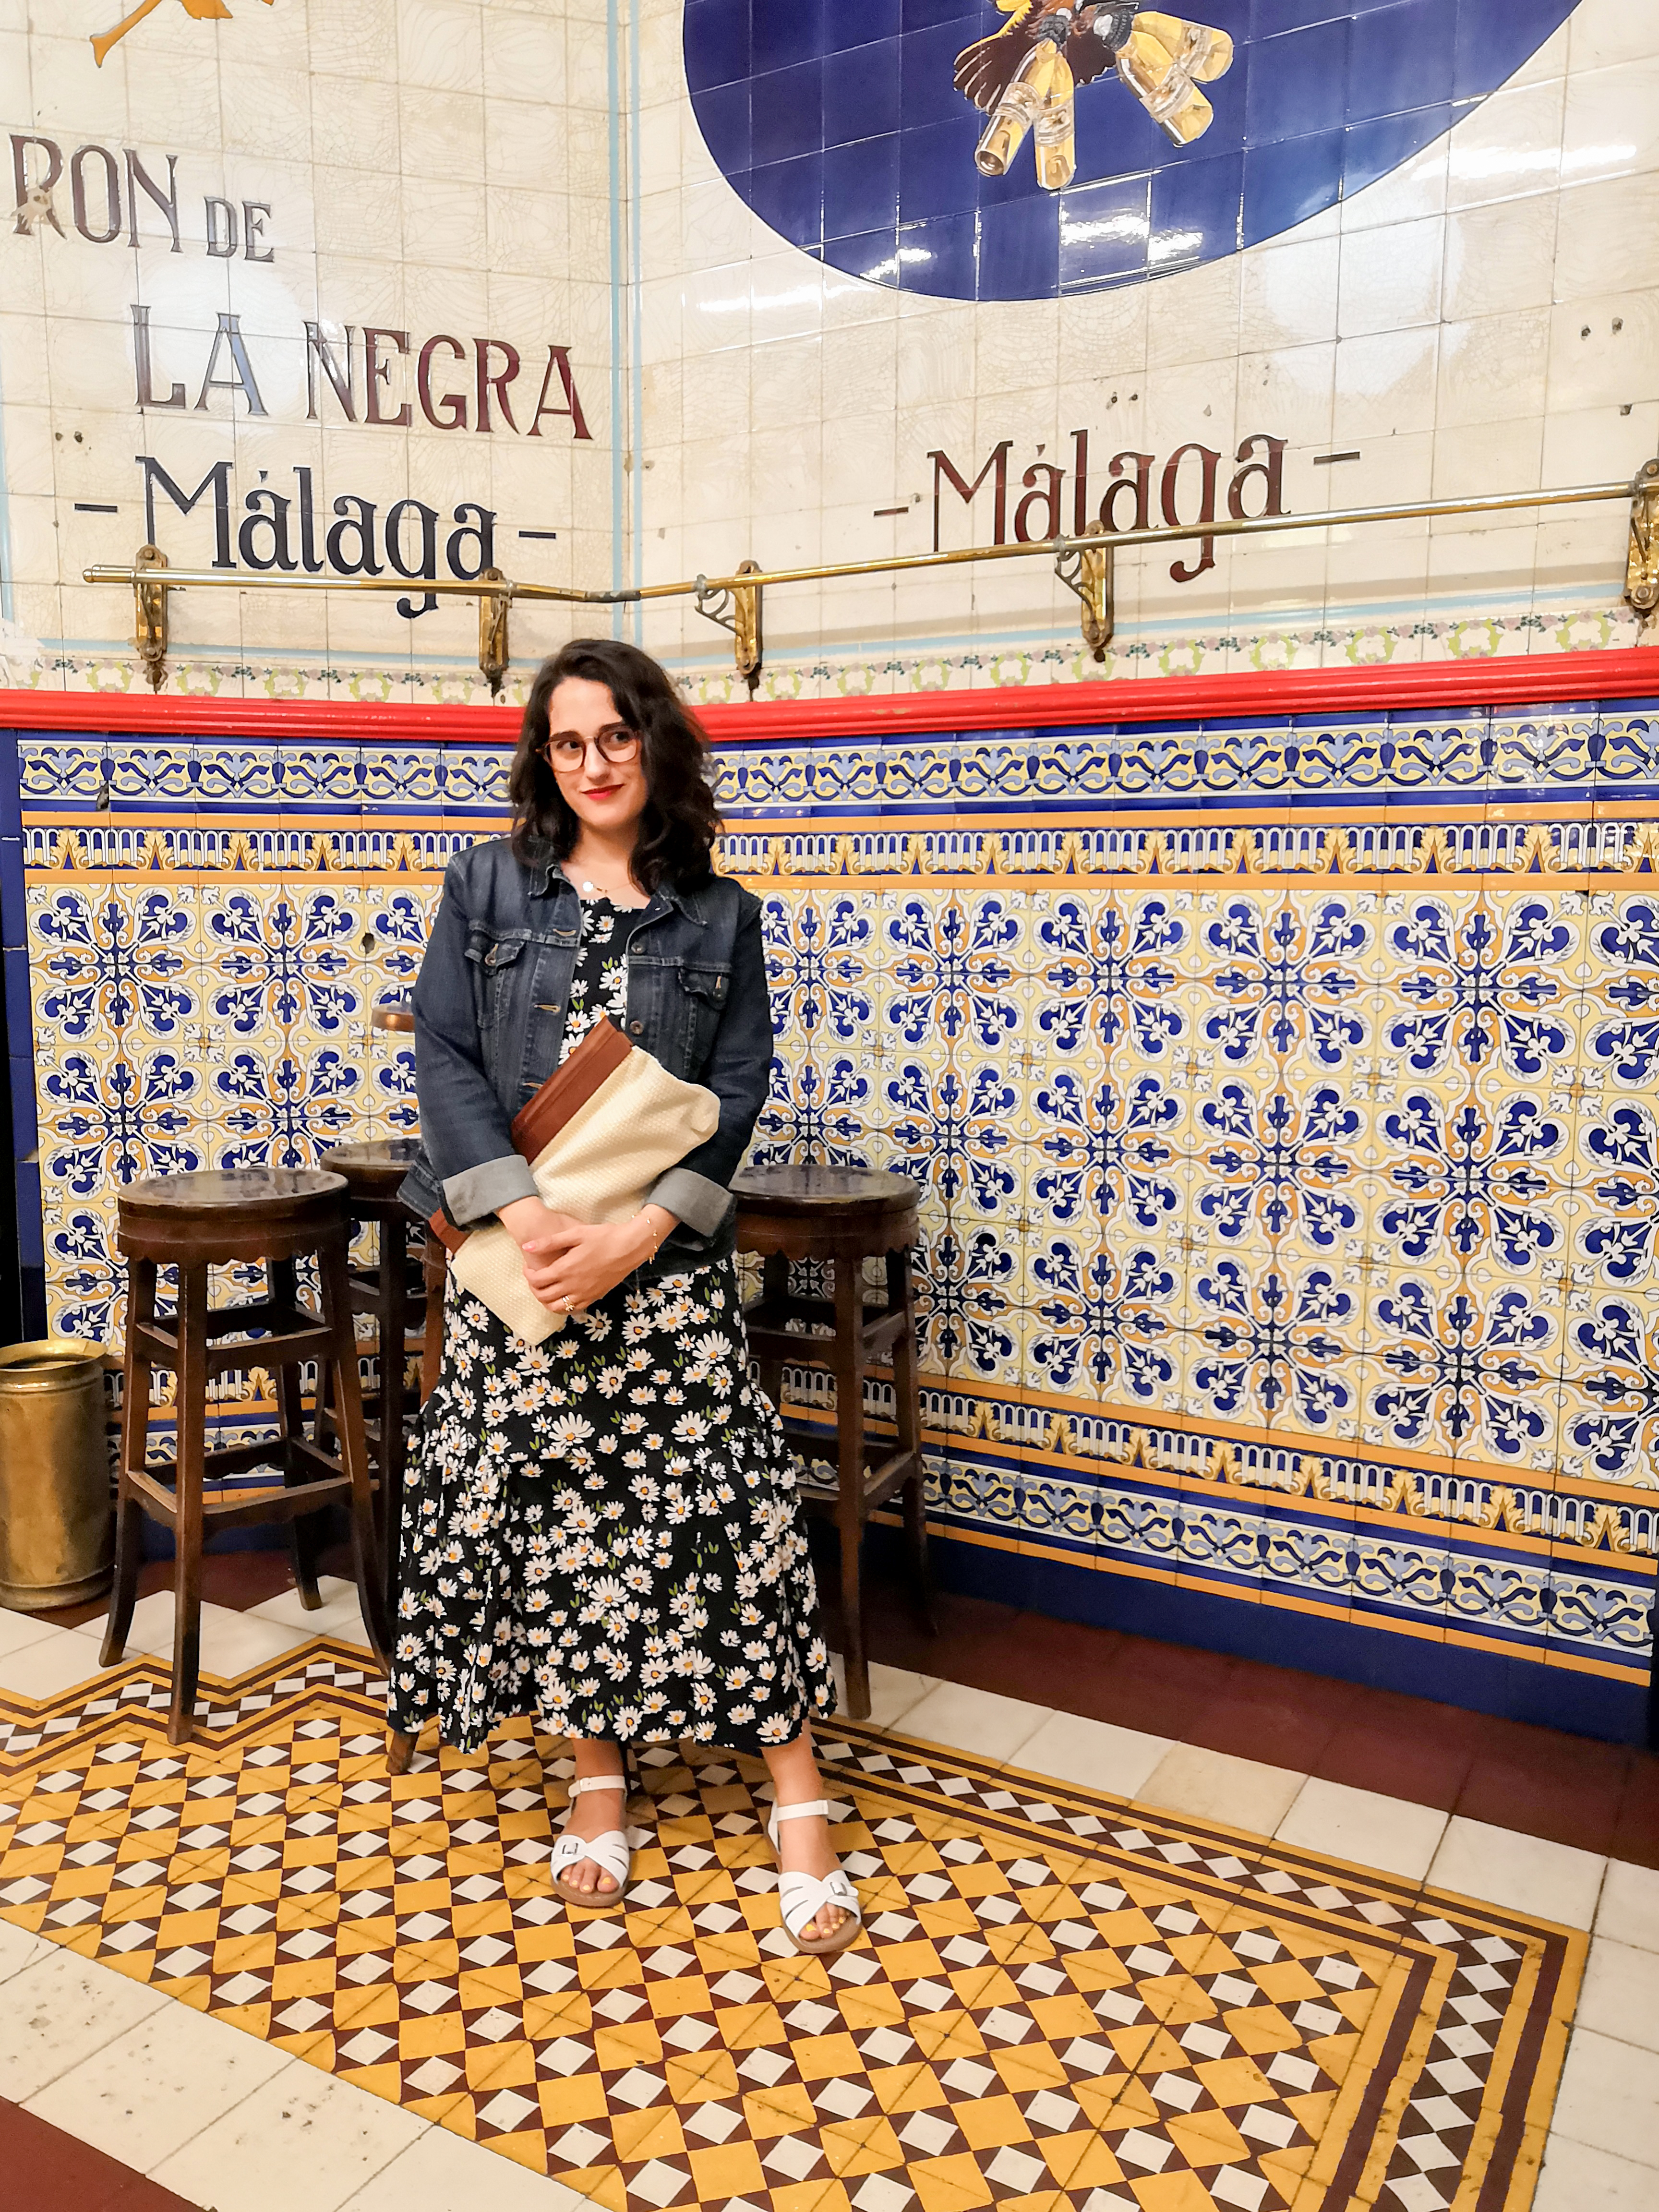 Katie wears a maxi dress with a daisy print and chains on the straps, white sandals,  a cream cotton and wooden handled clutch bag and a denim jacket with cuffed sleeves. She's standing in a Spanish bar with tiled floors and walls.